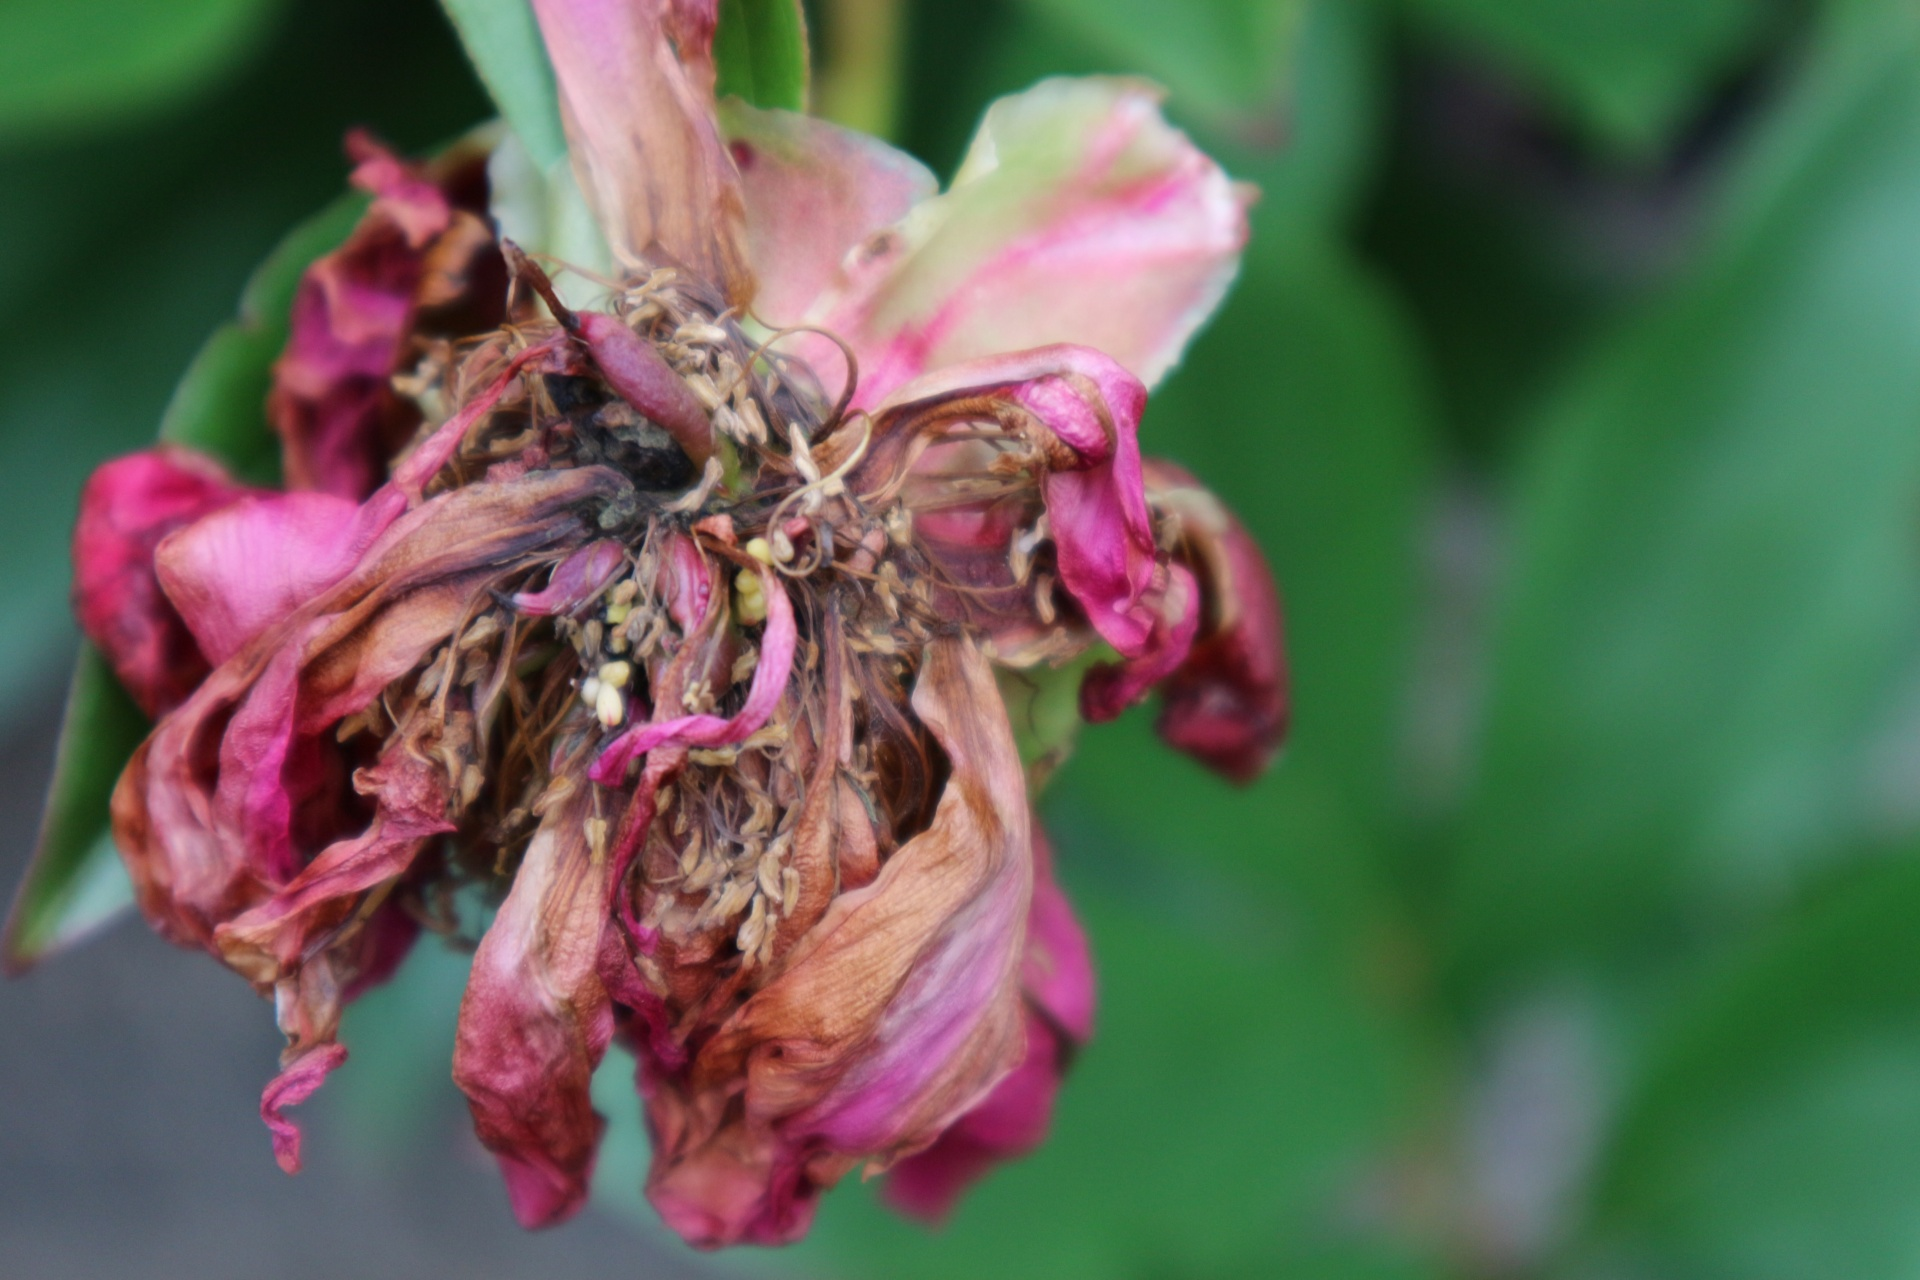 Withered flower photo